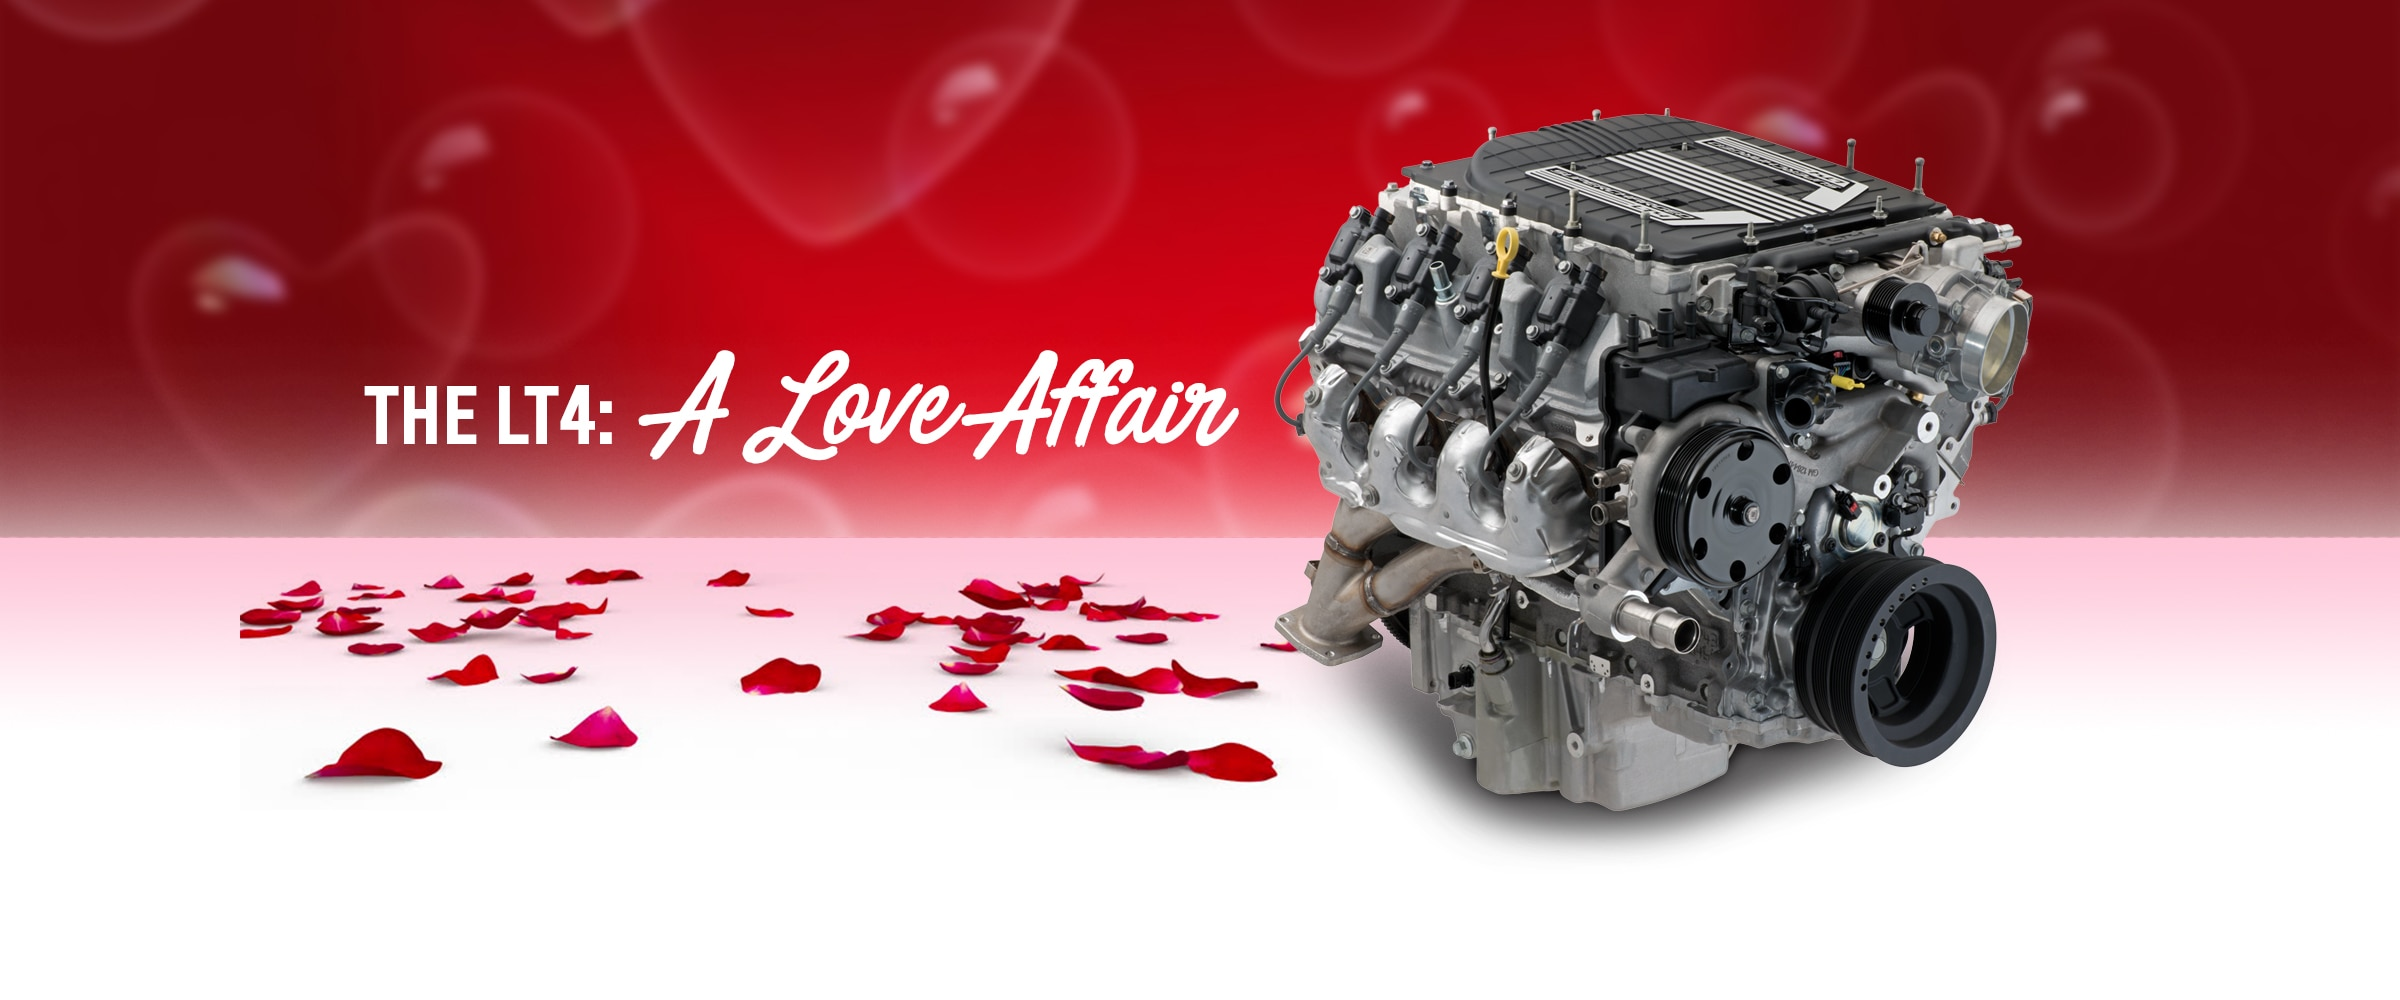 Parts, Engines, Chevy, Chevrolet, Chevrolet Performance, Crate Engines, LT4, LT4 Crate Engine, Camaro, Camaro ZL1, Valentine's Day, Corvette, Corvette Z06